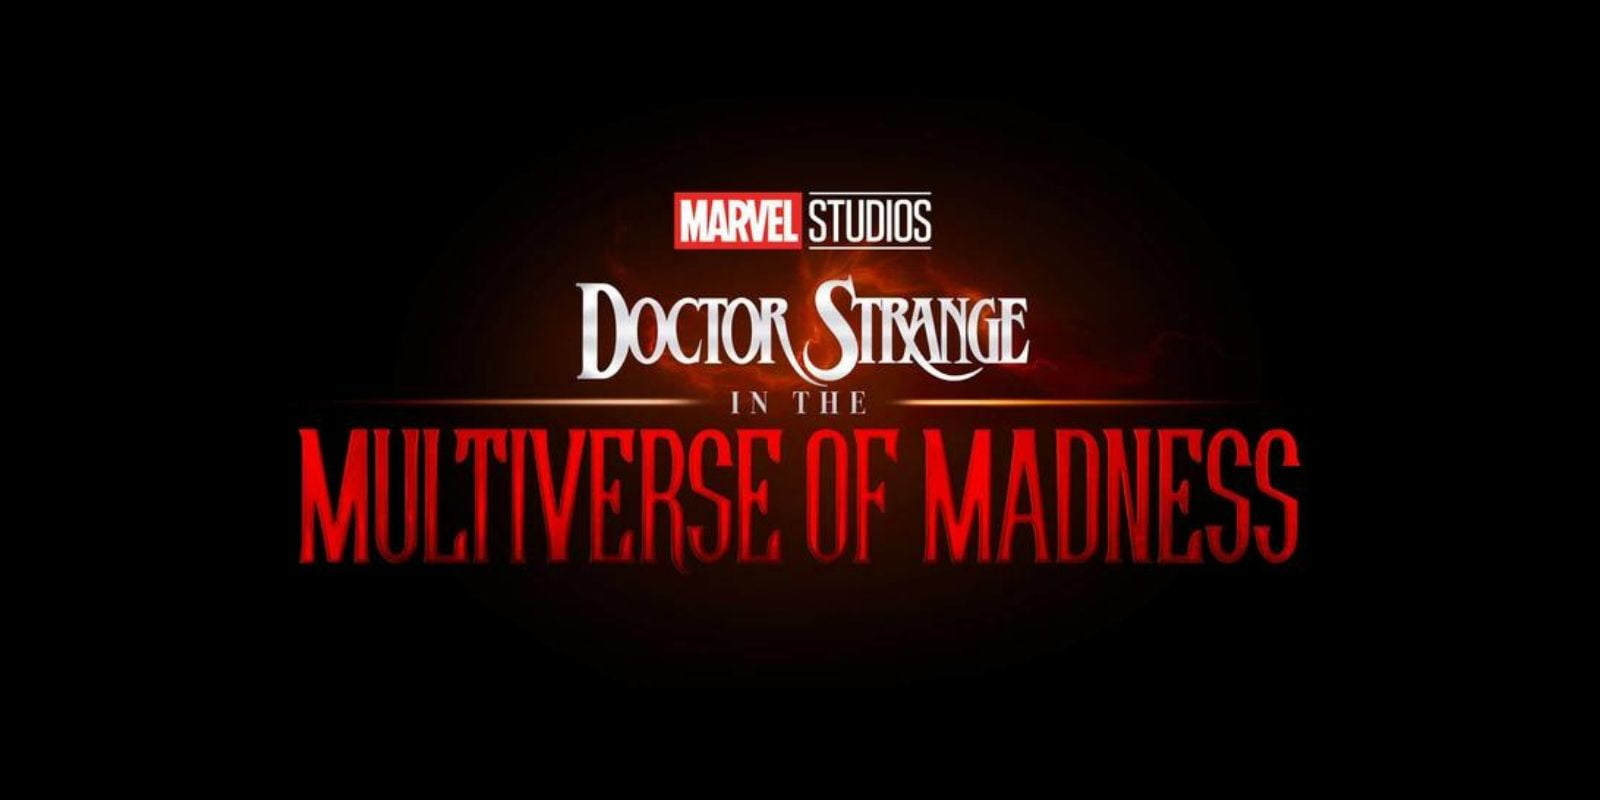 """Doctor Strange in the Multiverse of Madness"" movie logo"